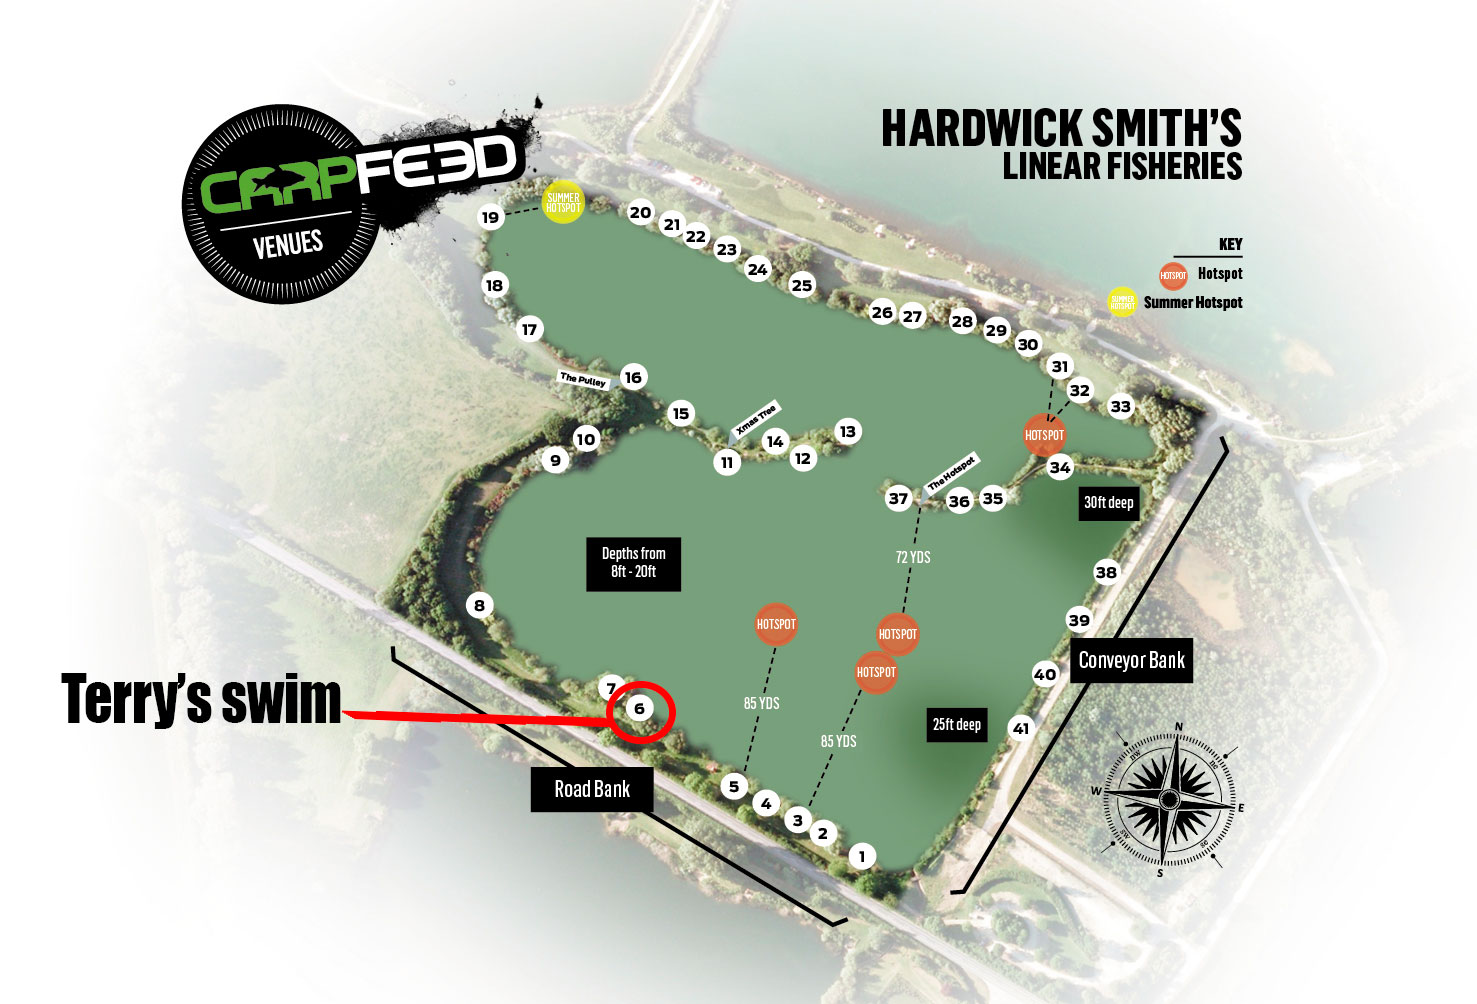 CLICK THE MAP FOR OUR FULL GUIDE TO HARDWICK SMITH'S